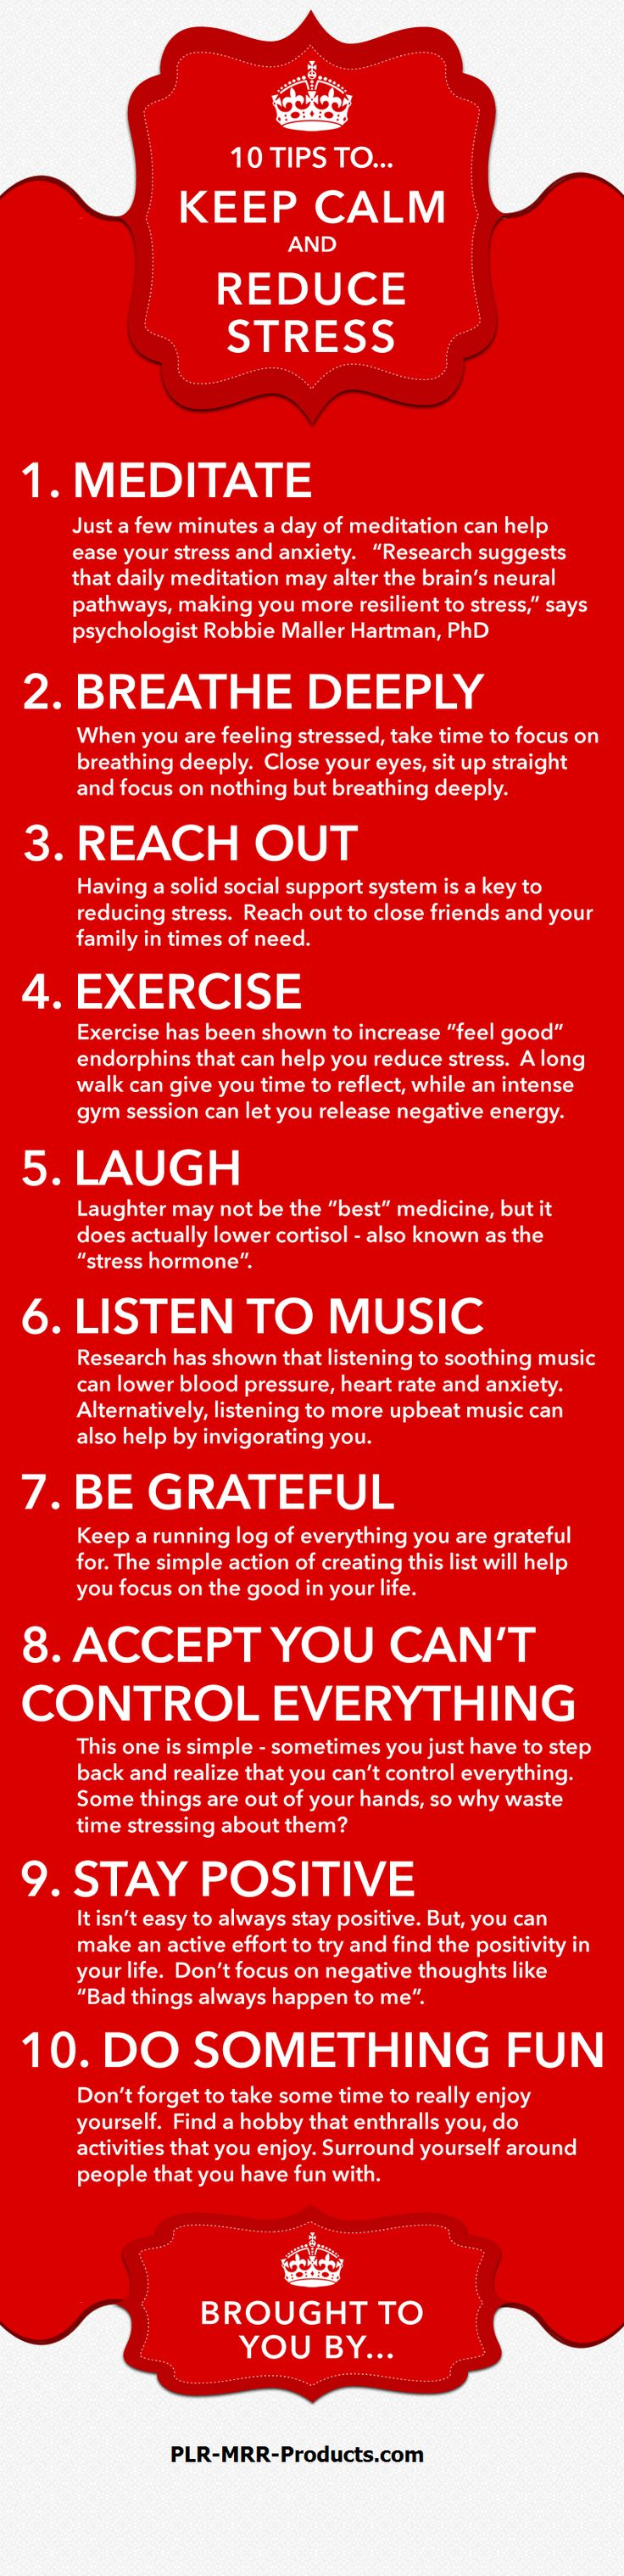 10 Tips to Reduce Stress (infographic)